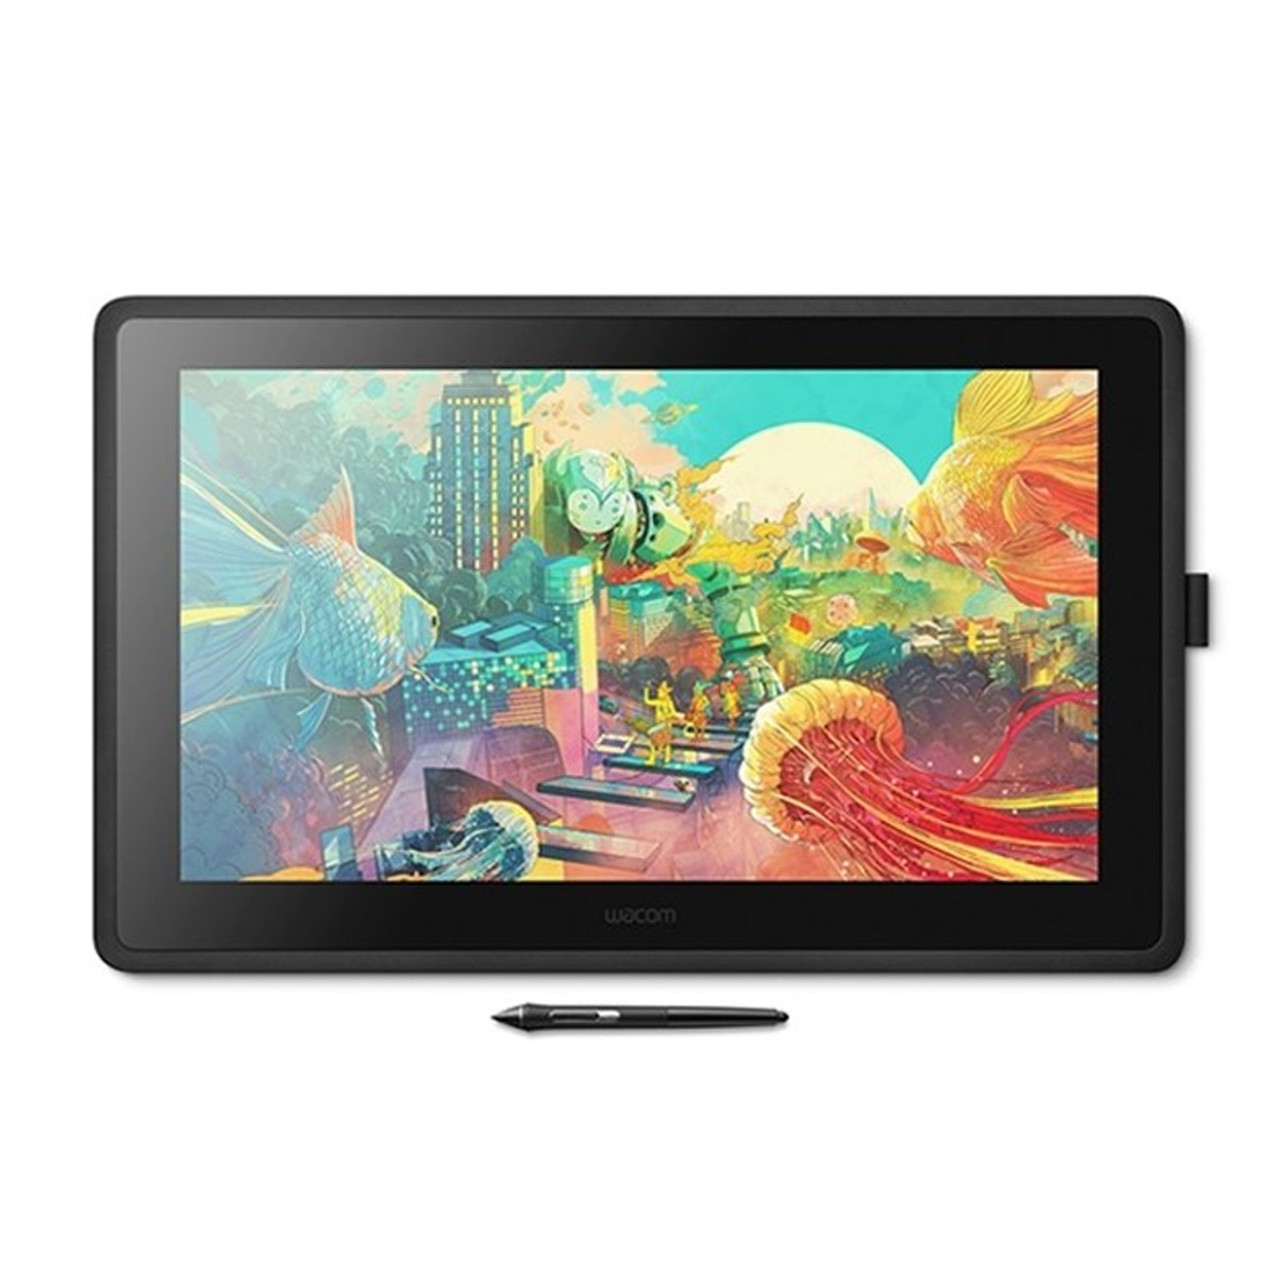 Image for Wacom Cintiq 22in Creative Pen Display CX Computer Superstore